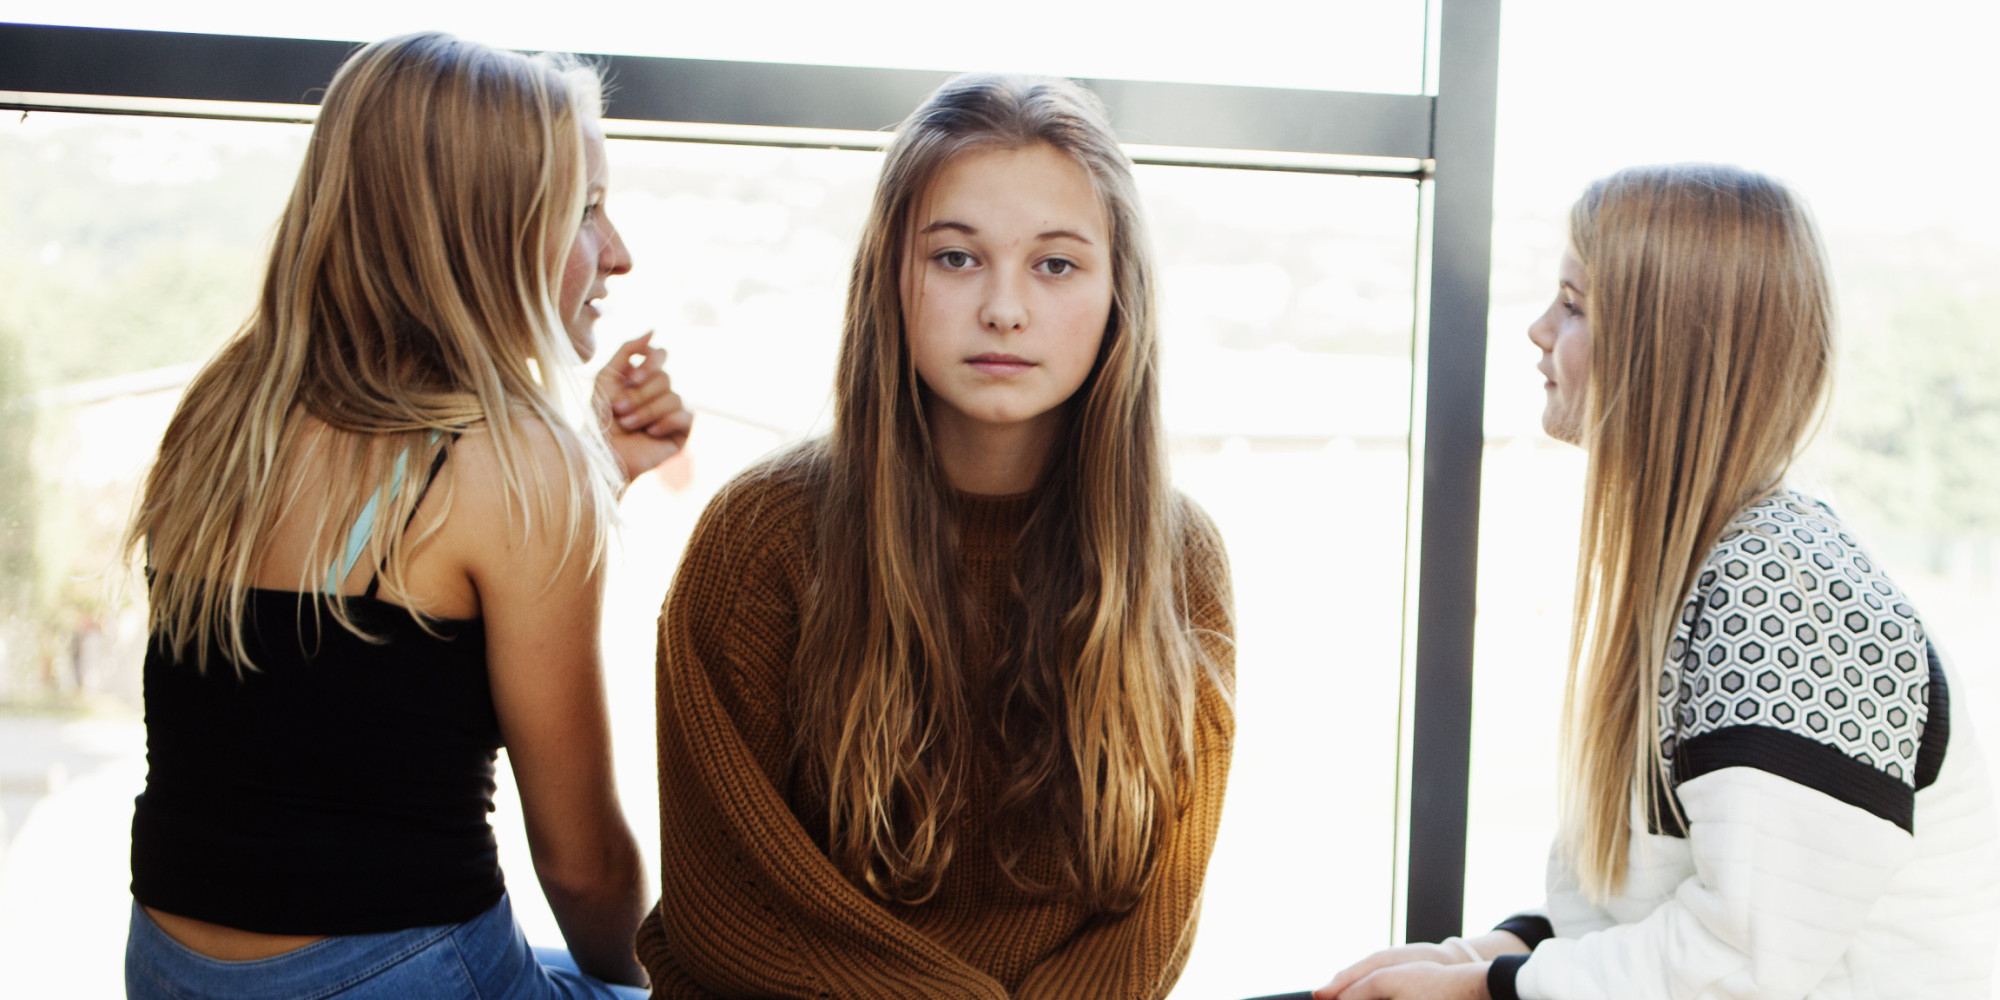 popular kids face greater risk of getting bullied study